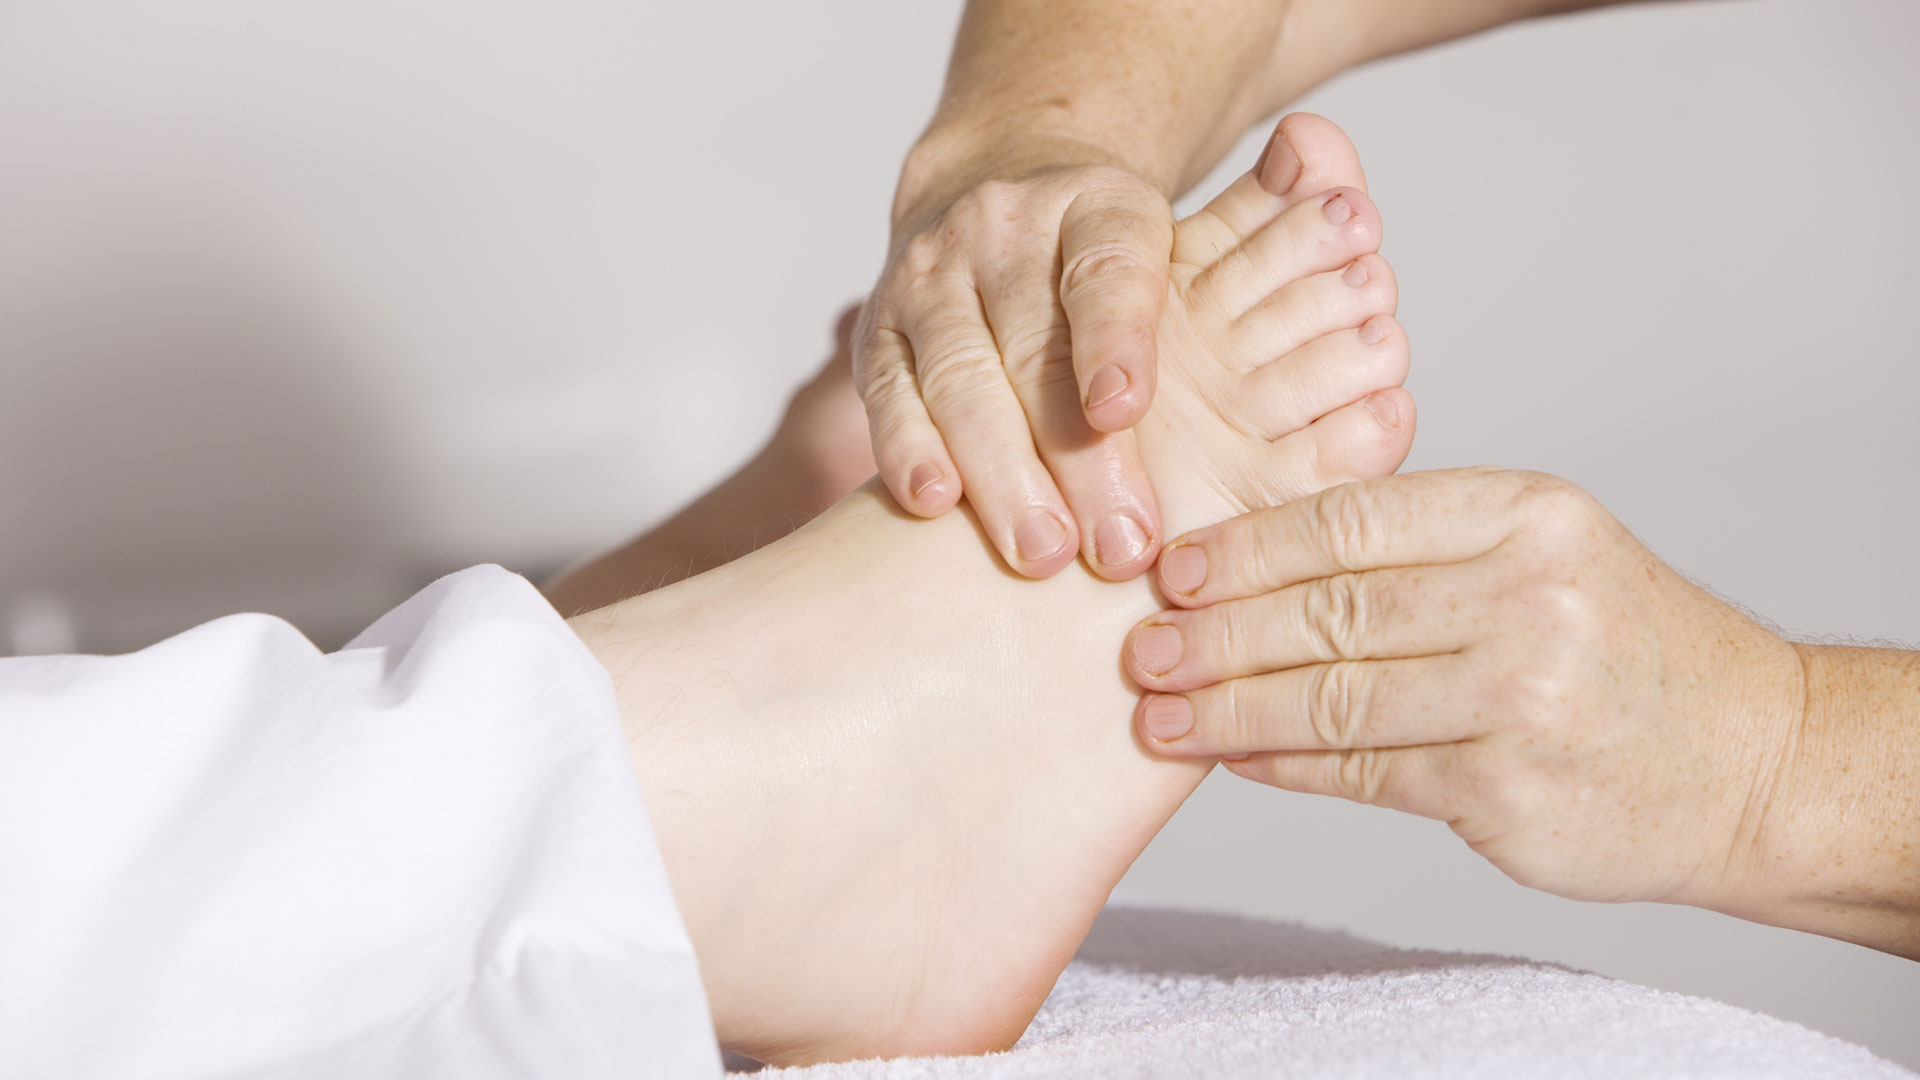 Reflexology in Caloundra